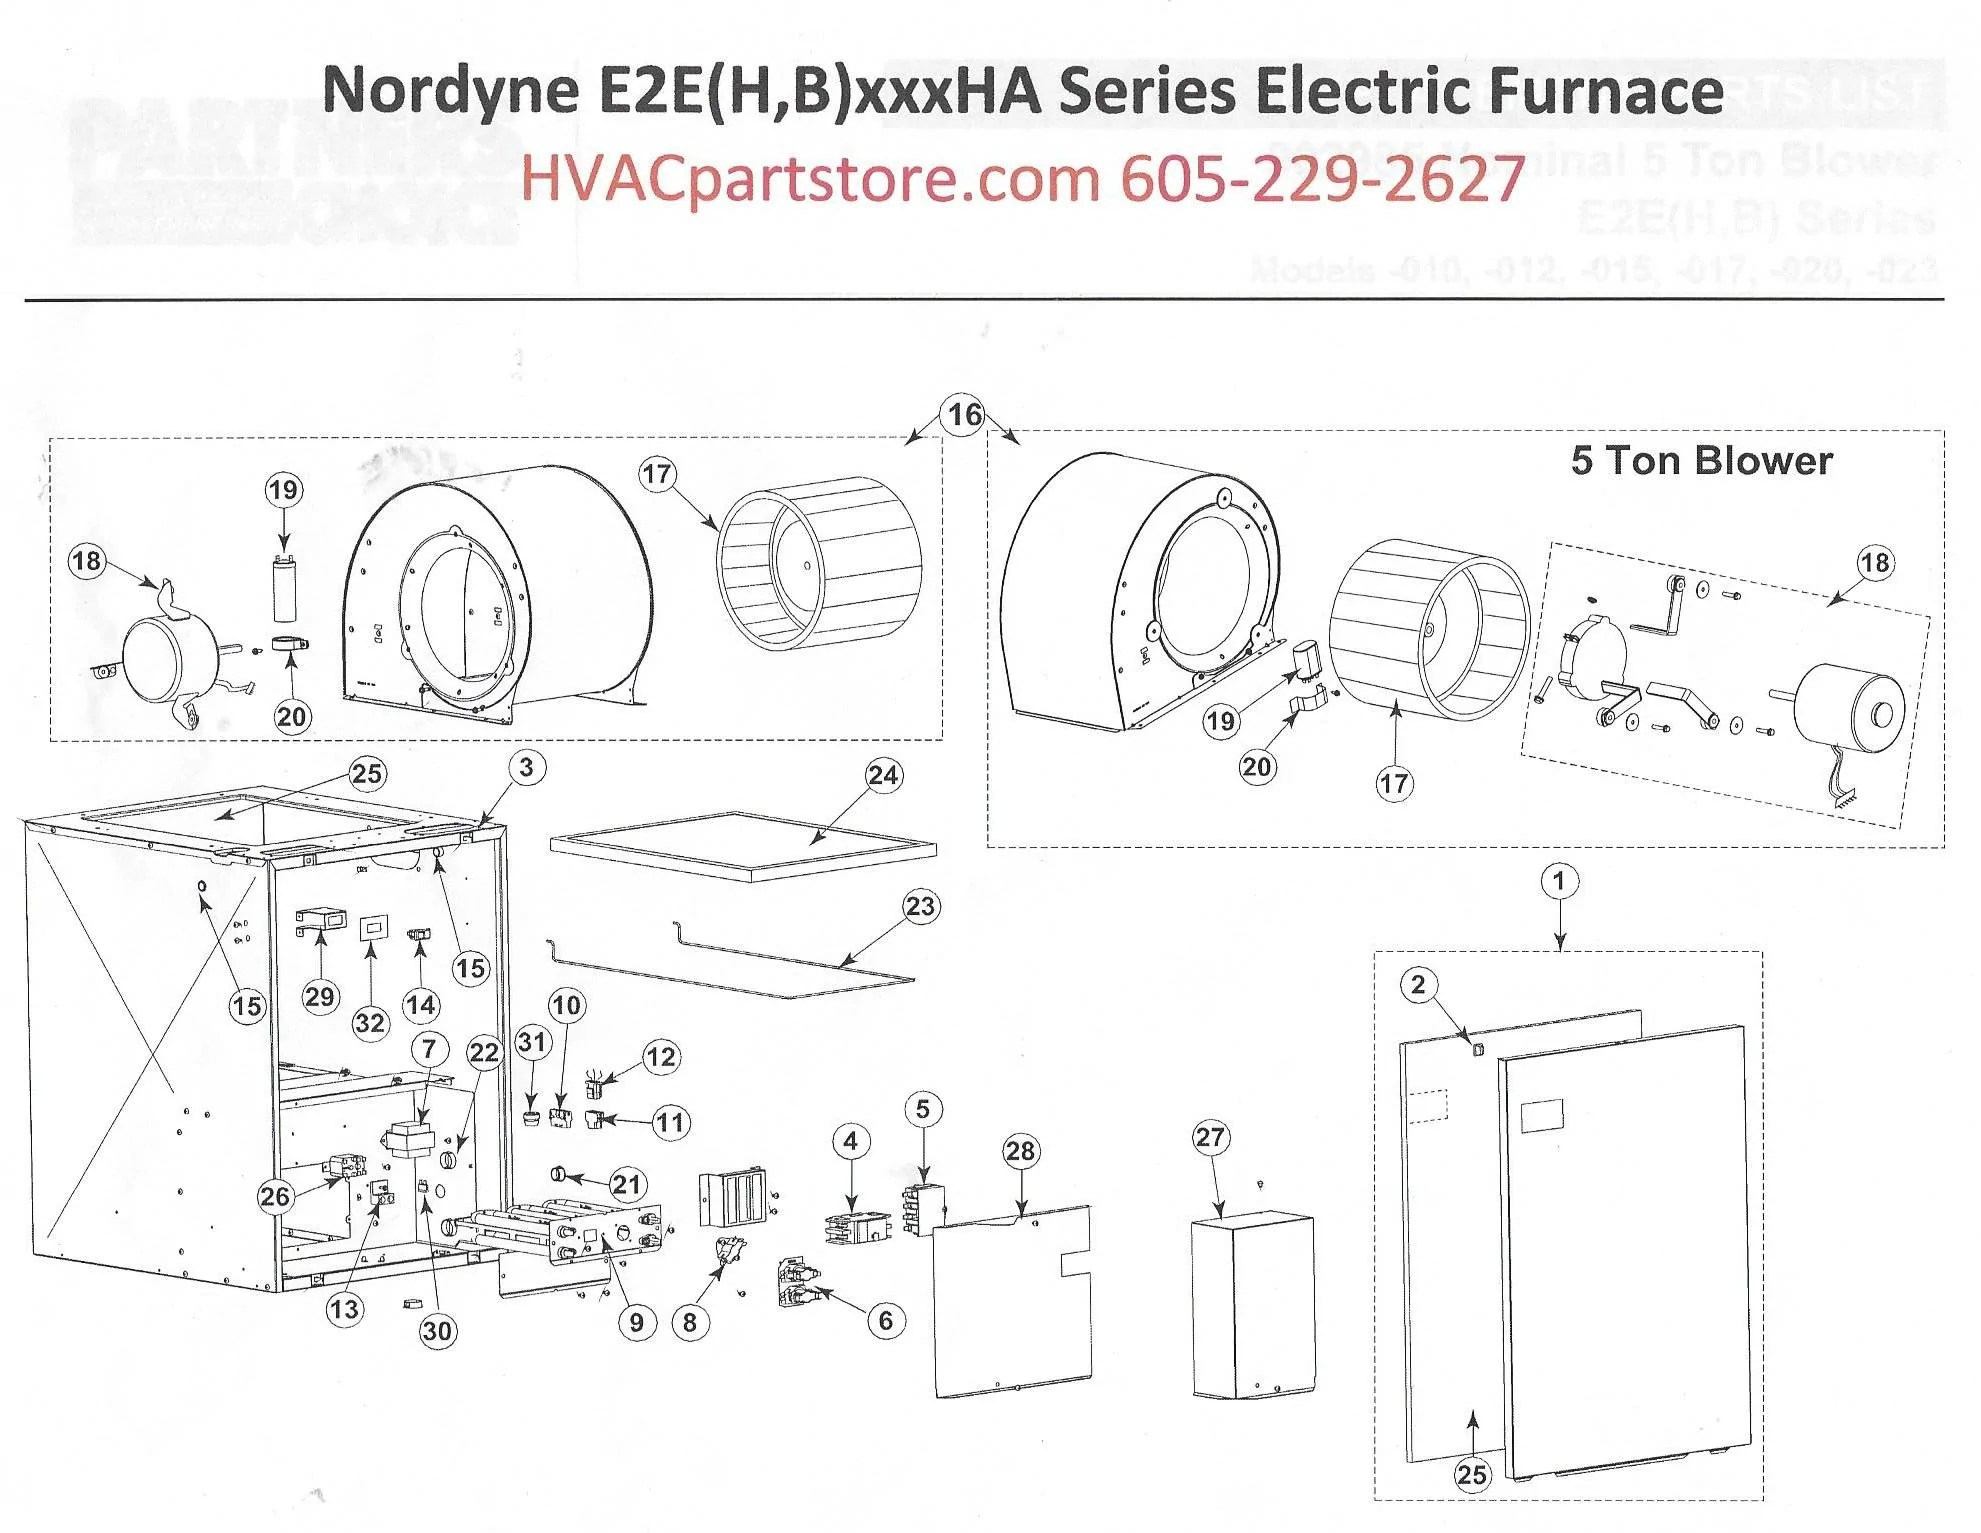 E2EB017HB Nordyne Electric Furnace Parts – HVACpartstore